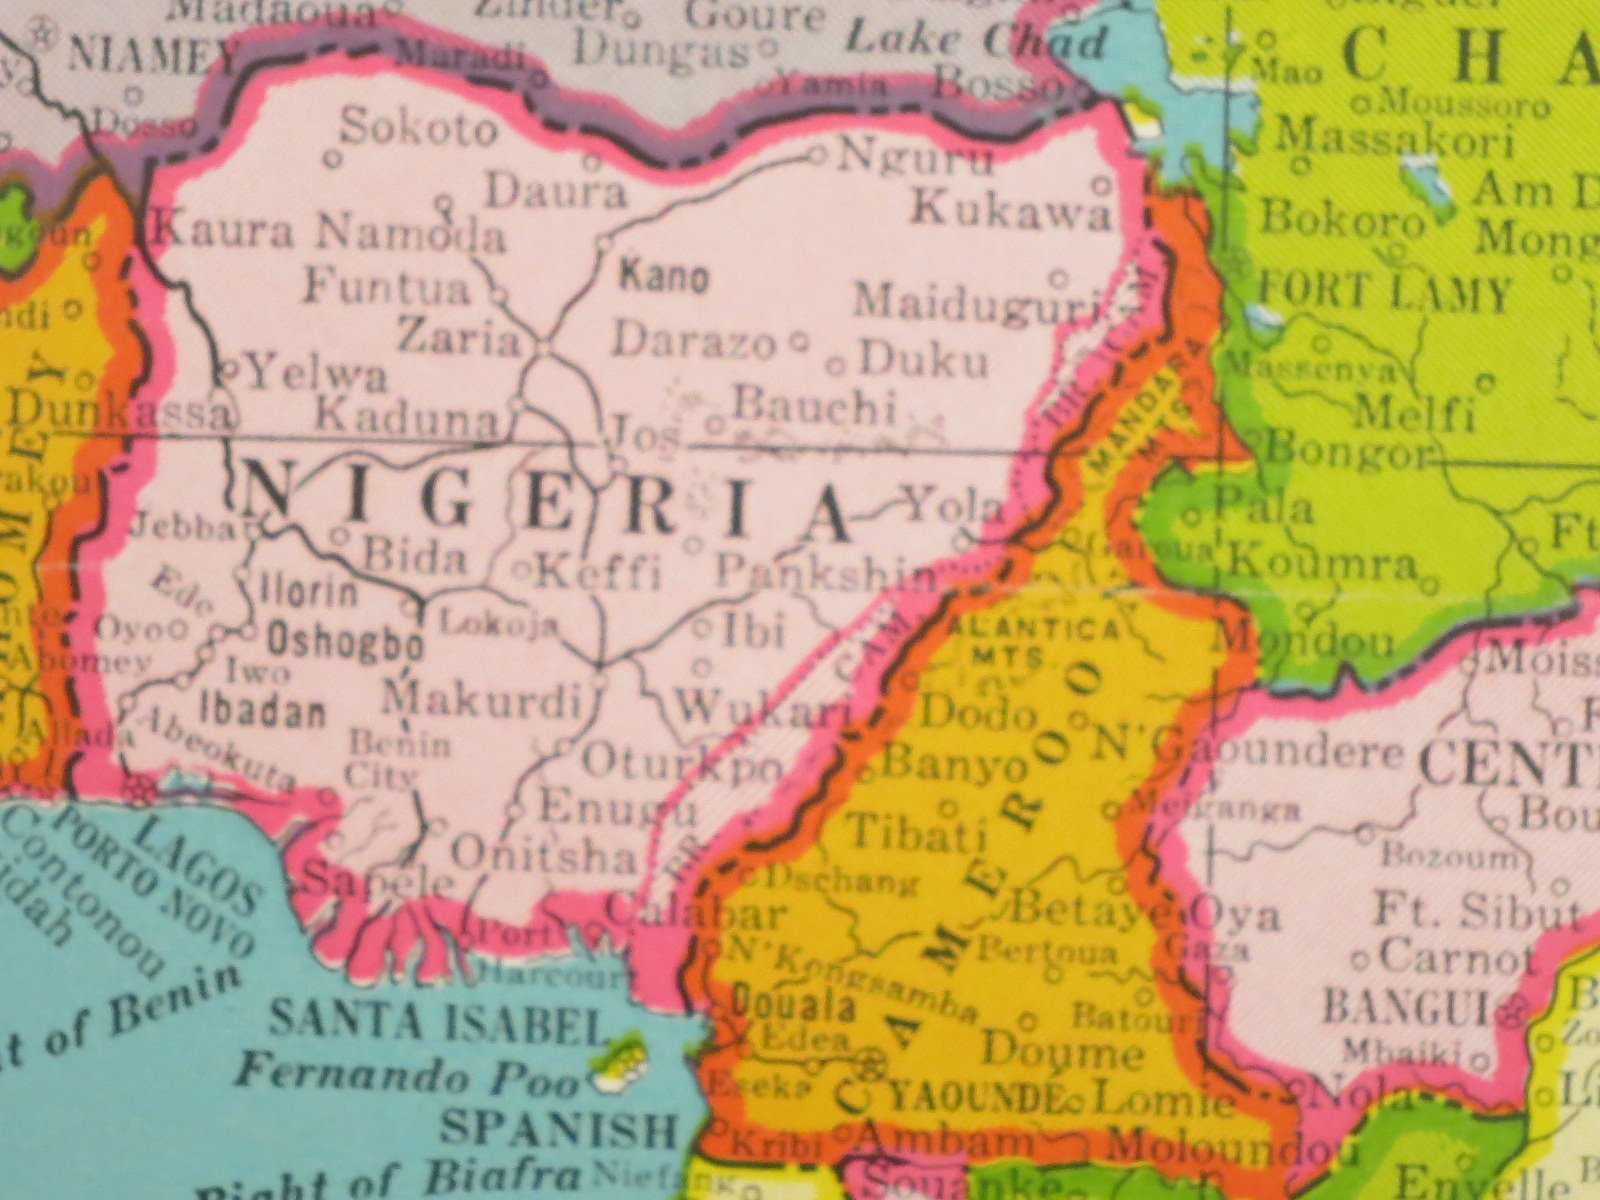 Nigeria and Cameroon, 1960 | Map Library - University of ...